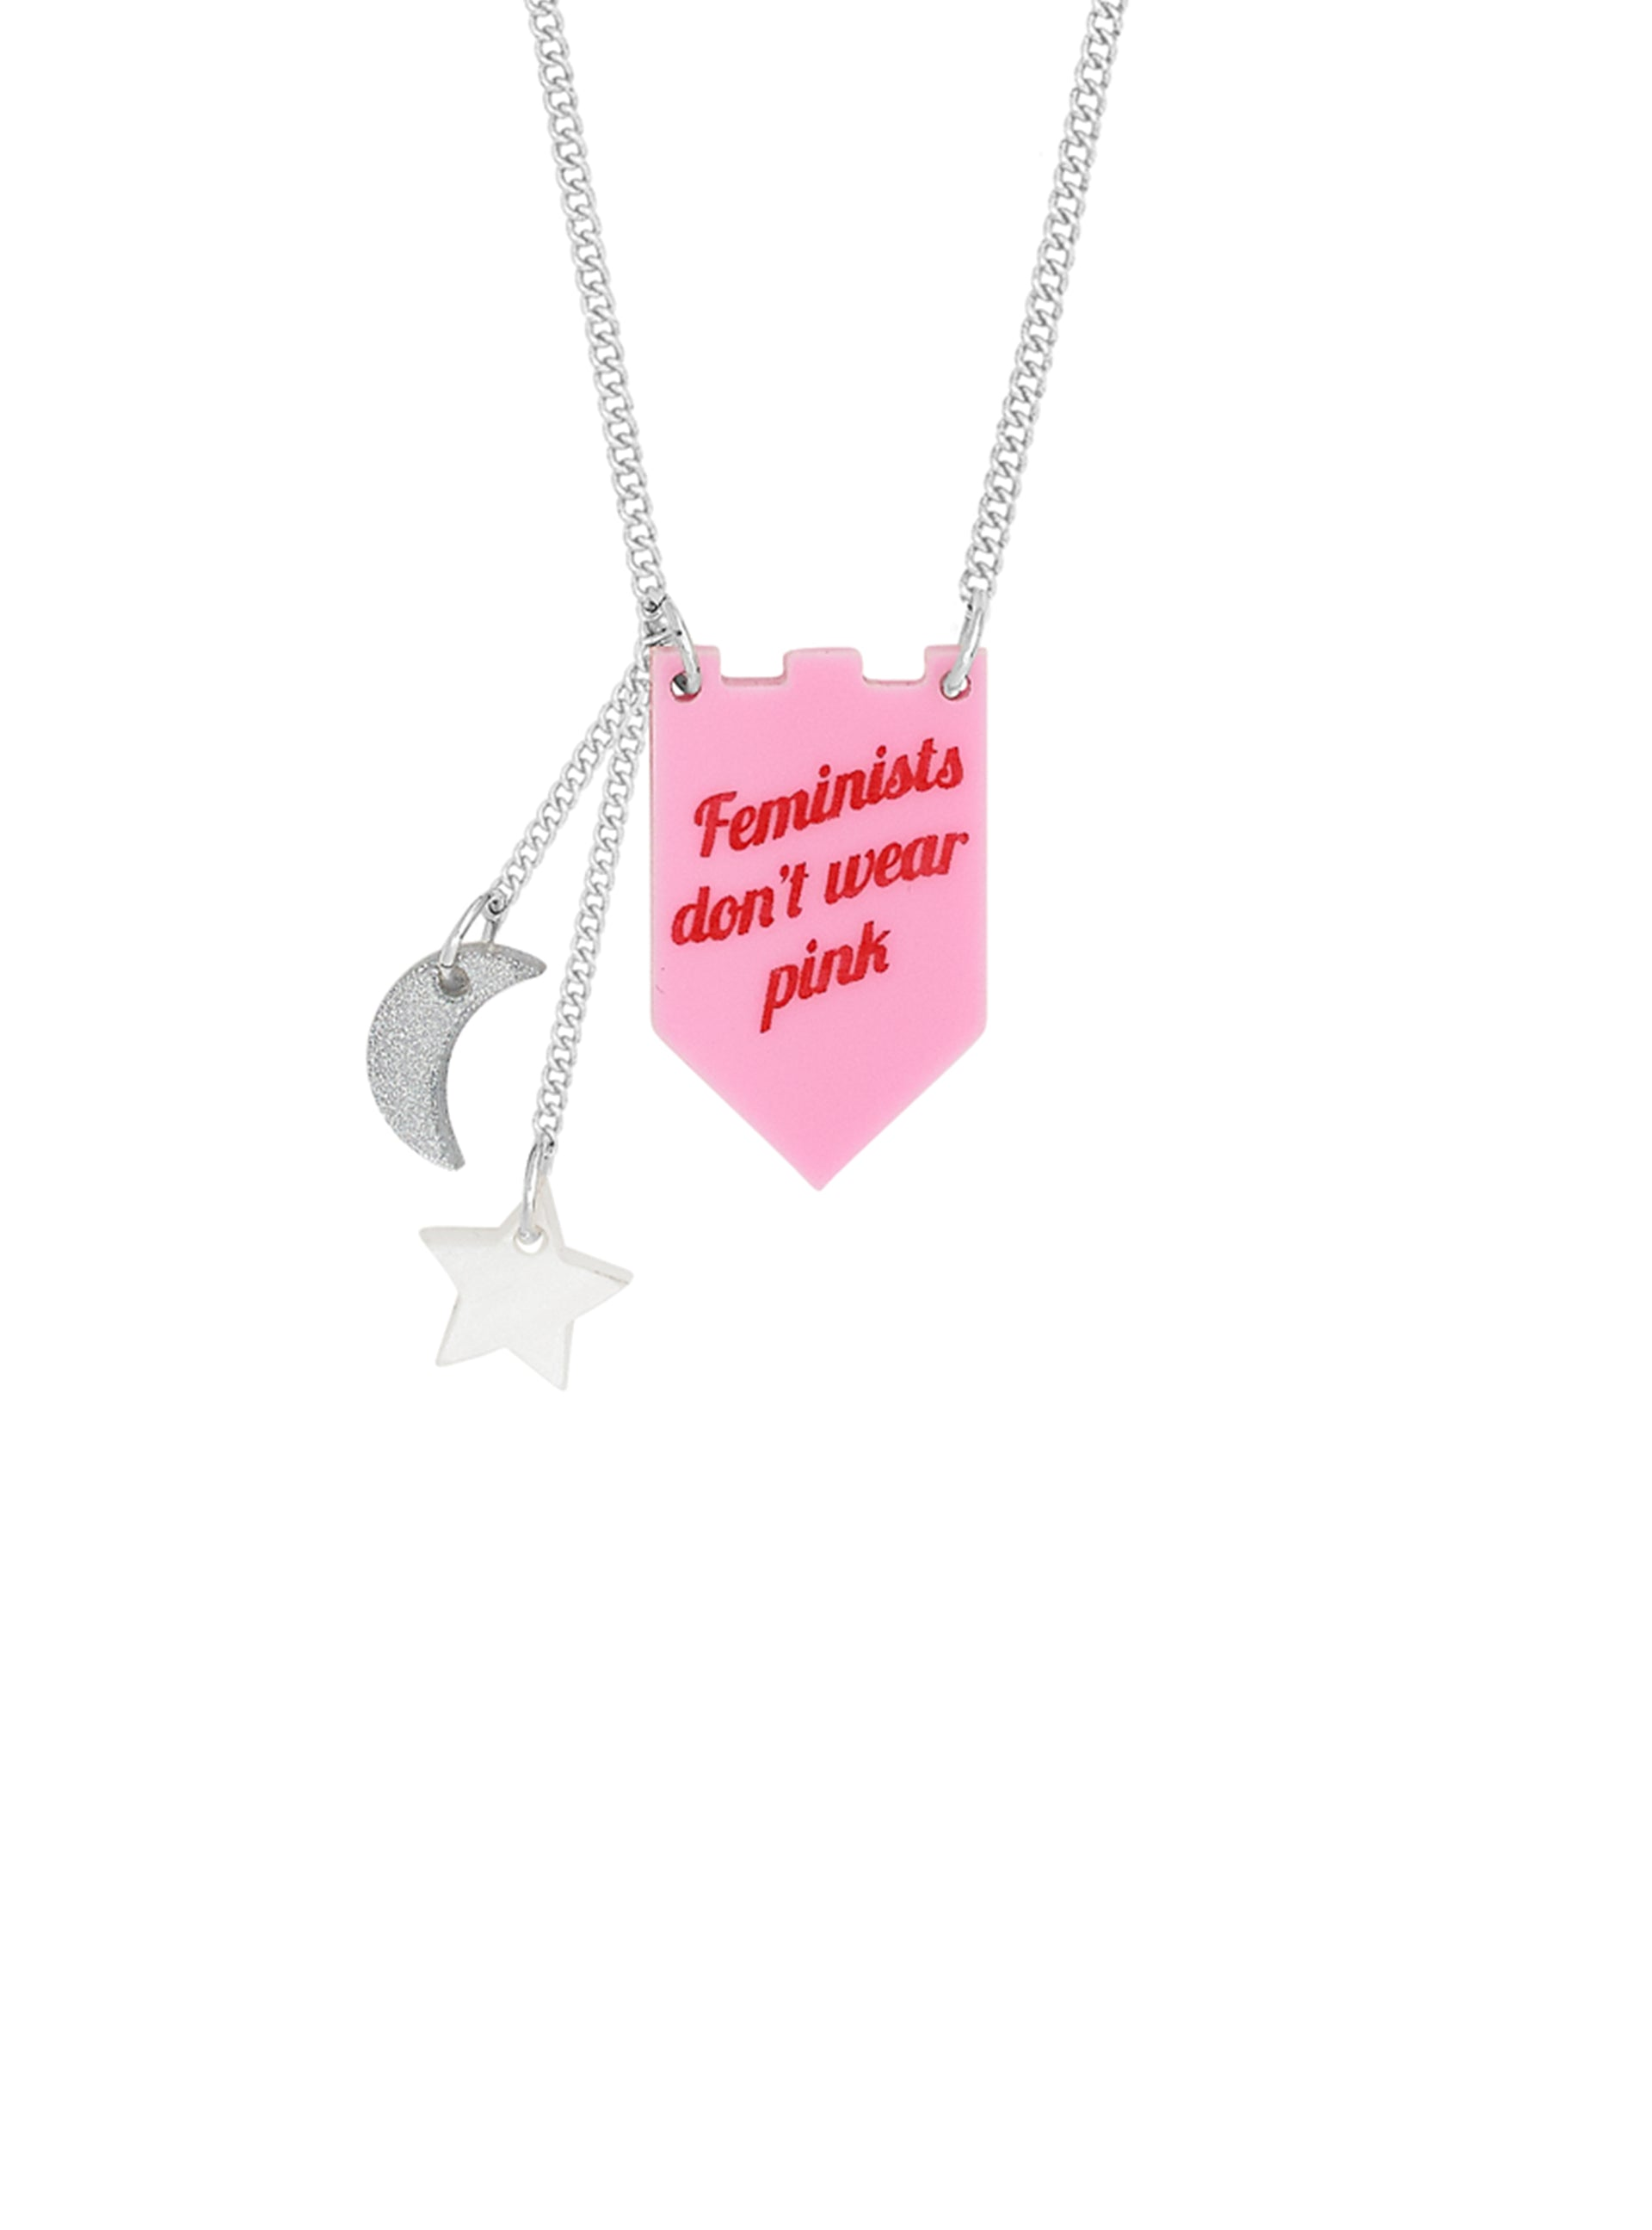 feminists don't wear pink necklace